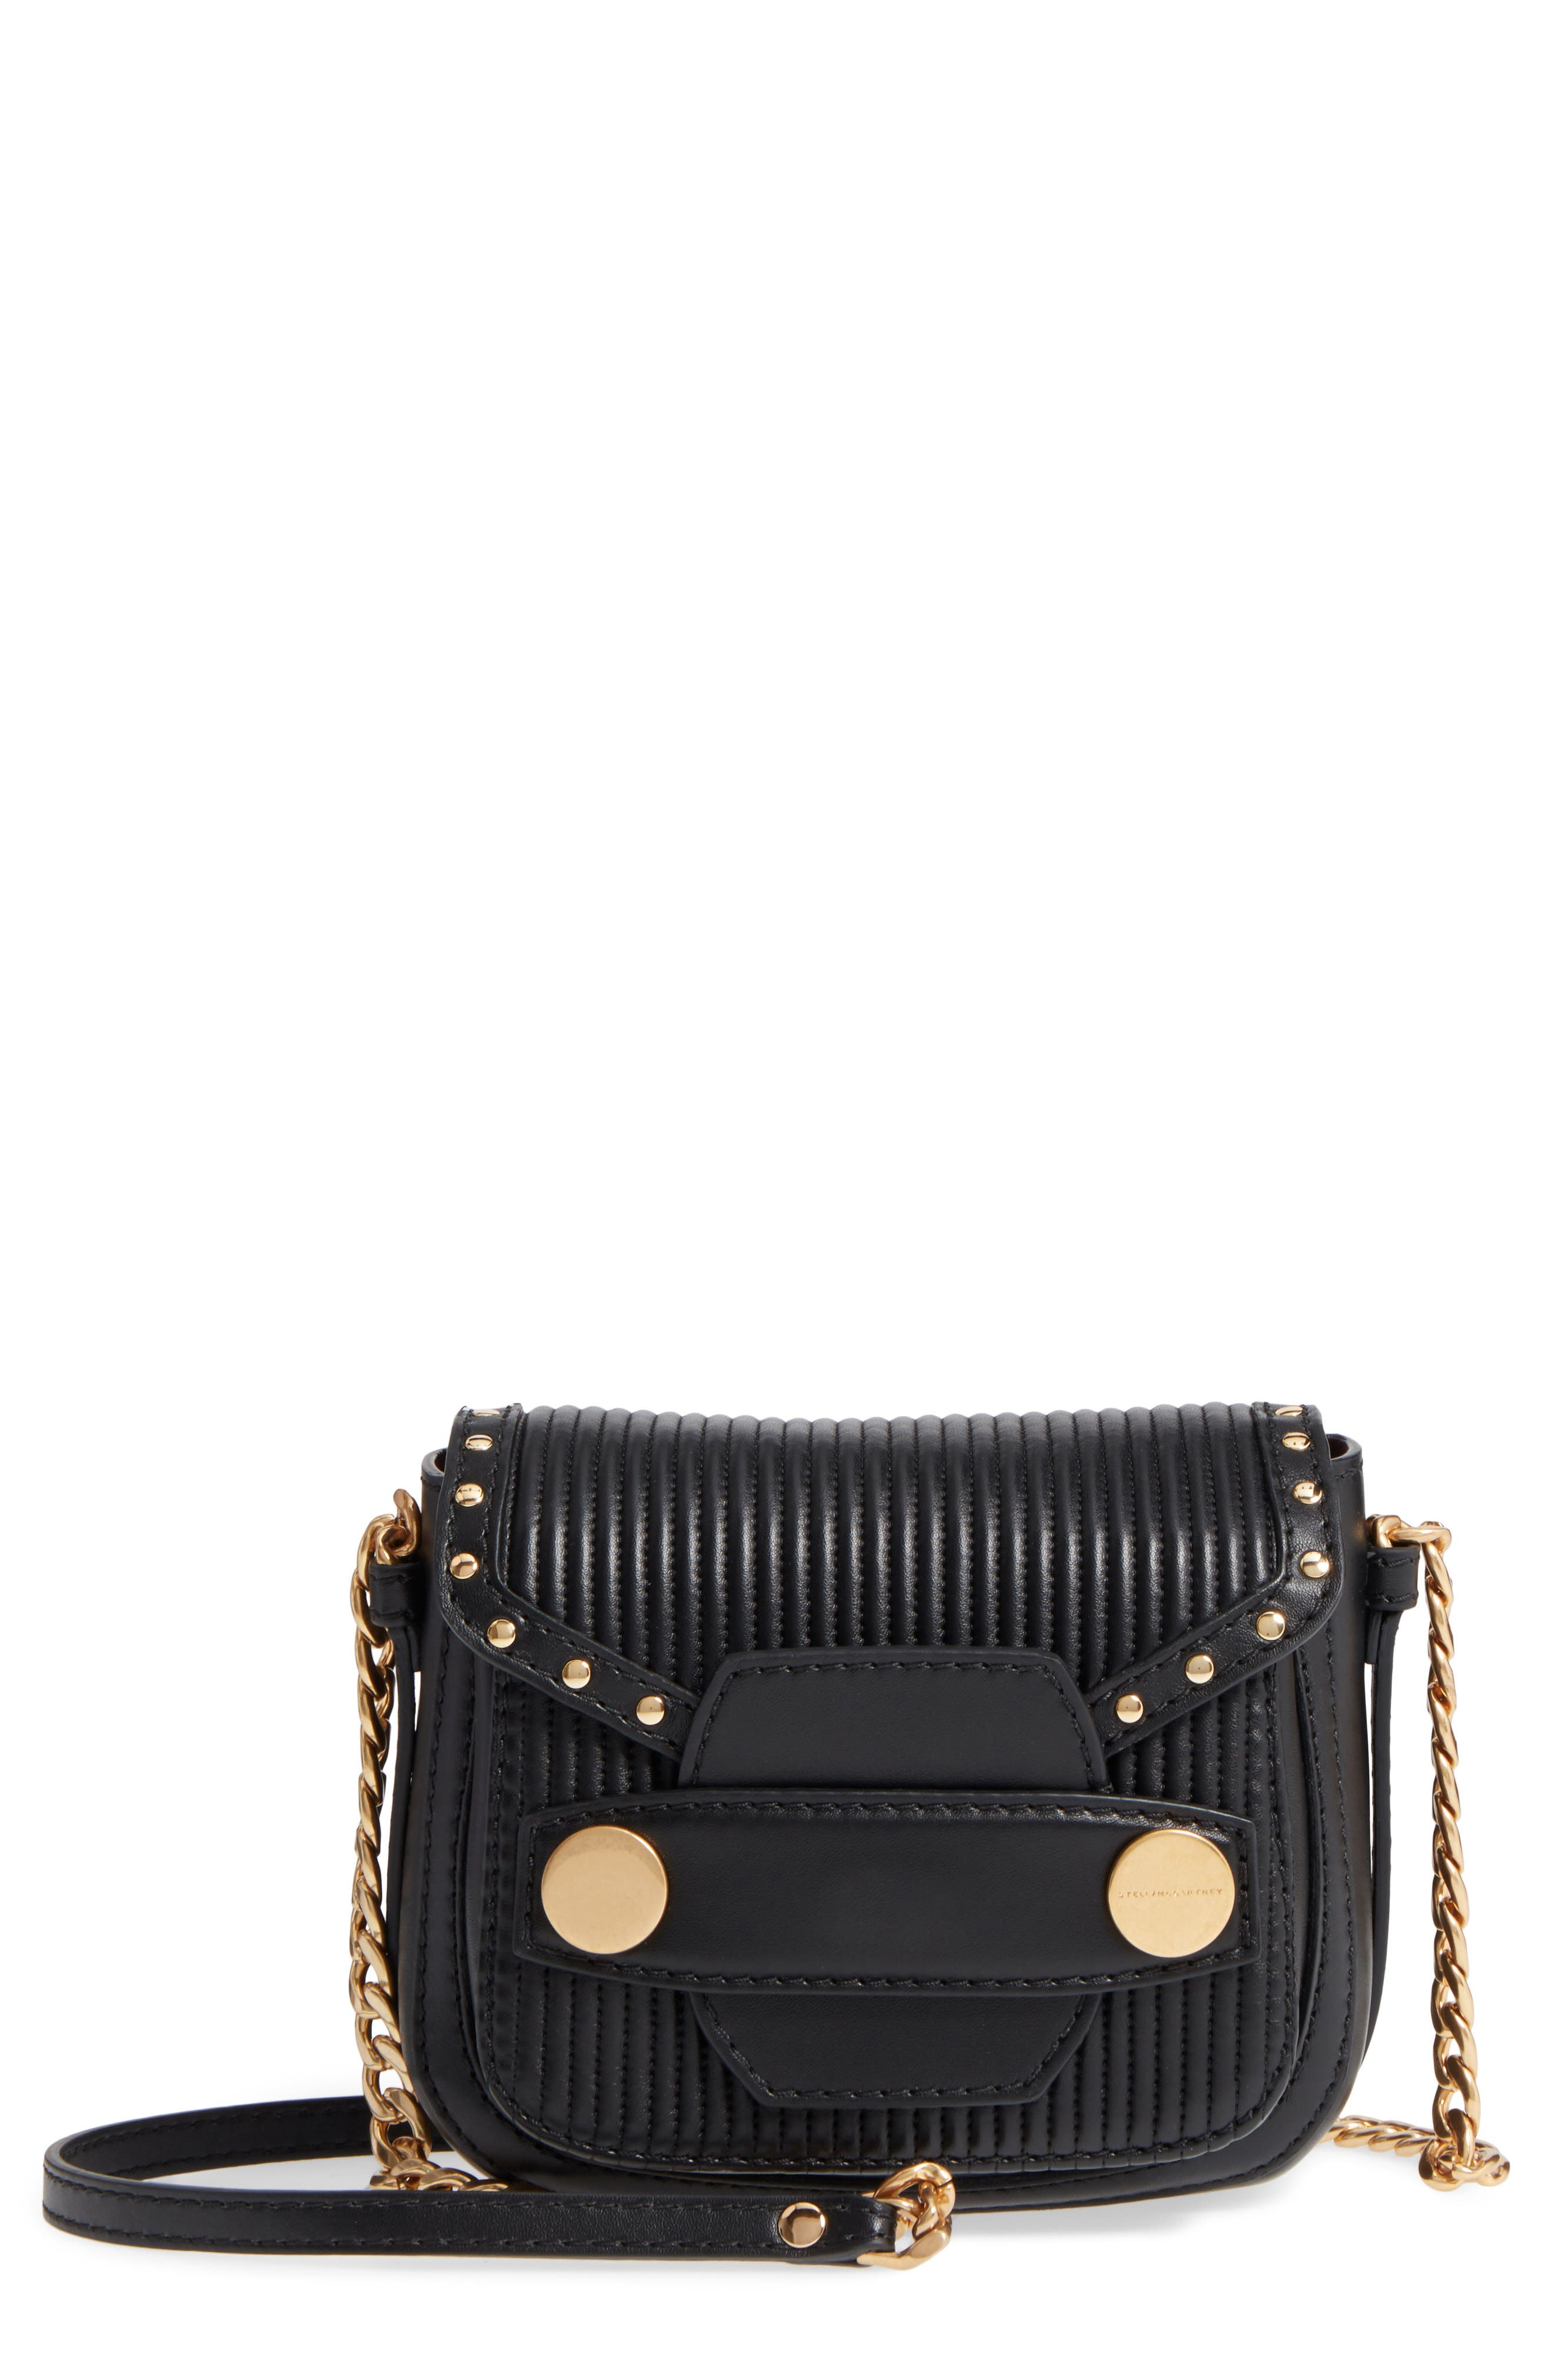 Stella McCartney Quilted Faux Leather Crossbody Bag